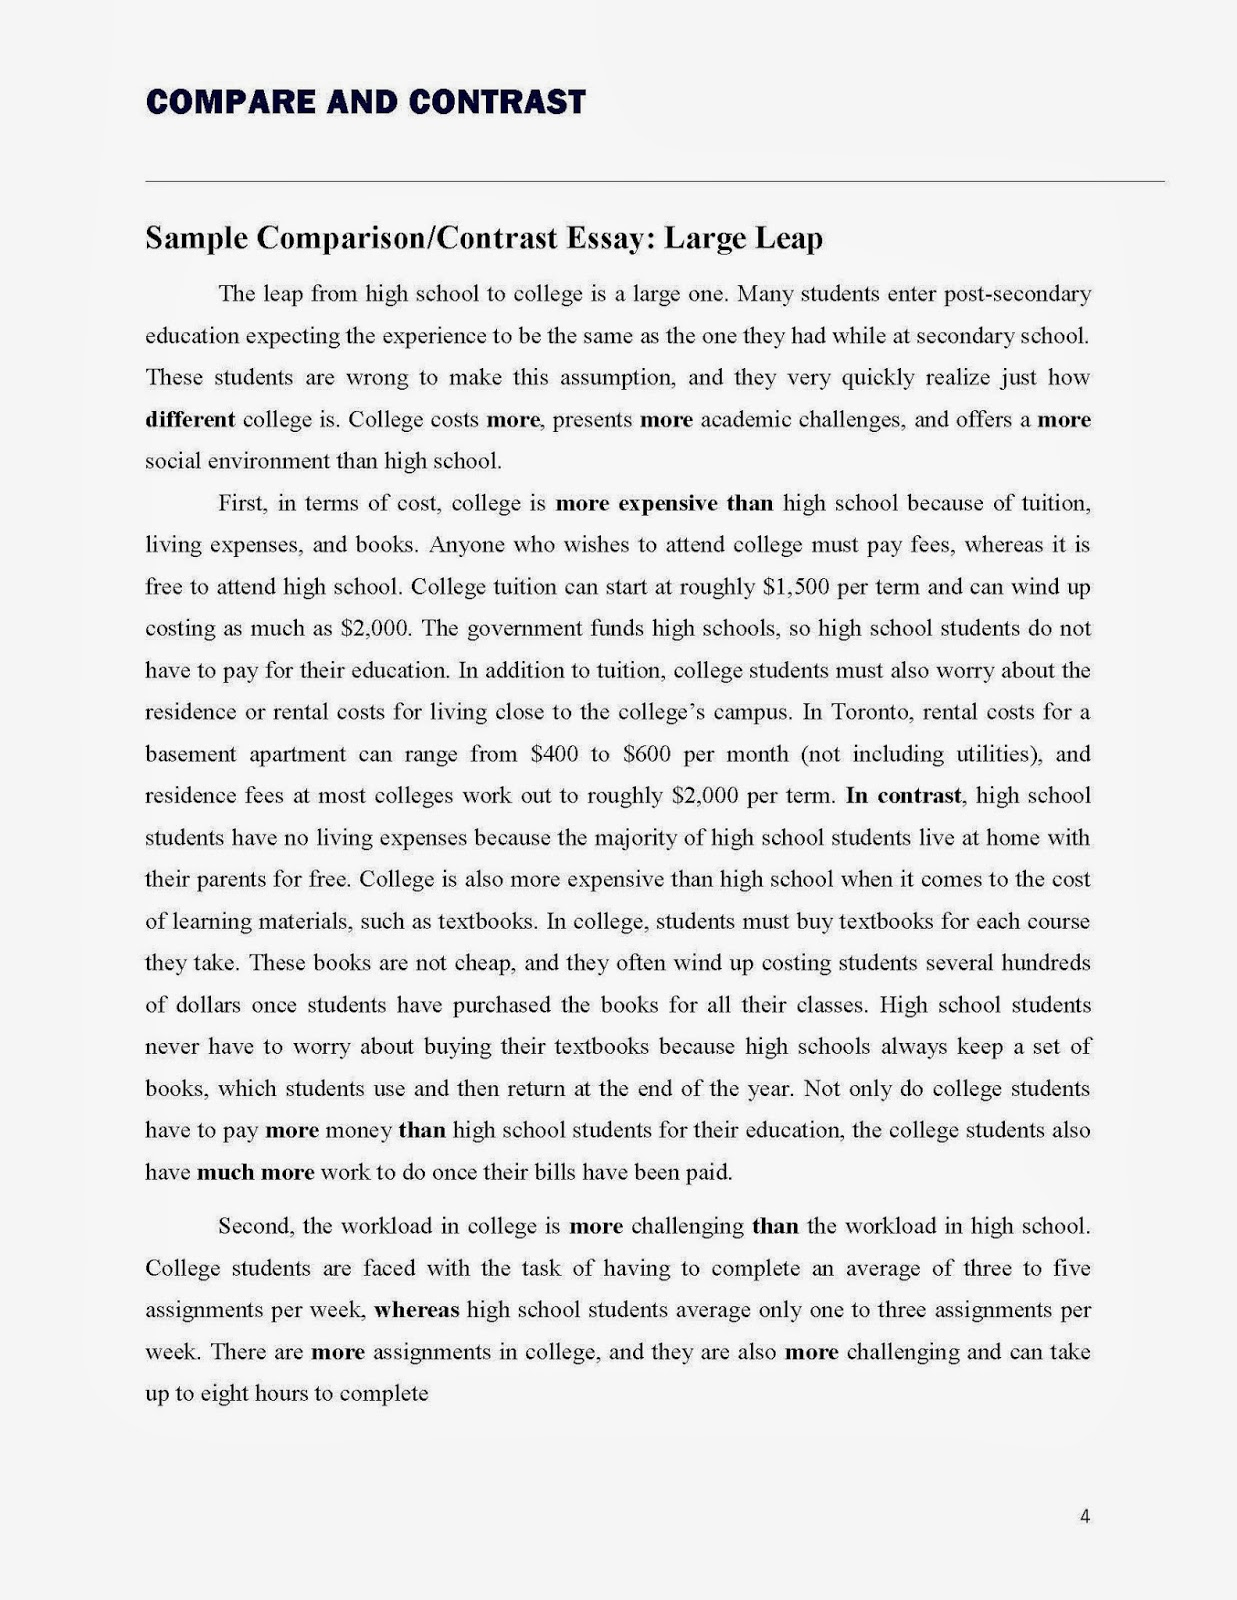 011 Compare And Contrast Essay Compareandcontrastessay Page 4h125 Frightening Prompts 5th Grade Rubric College Ideas 12th Full